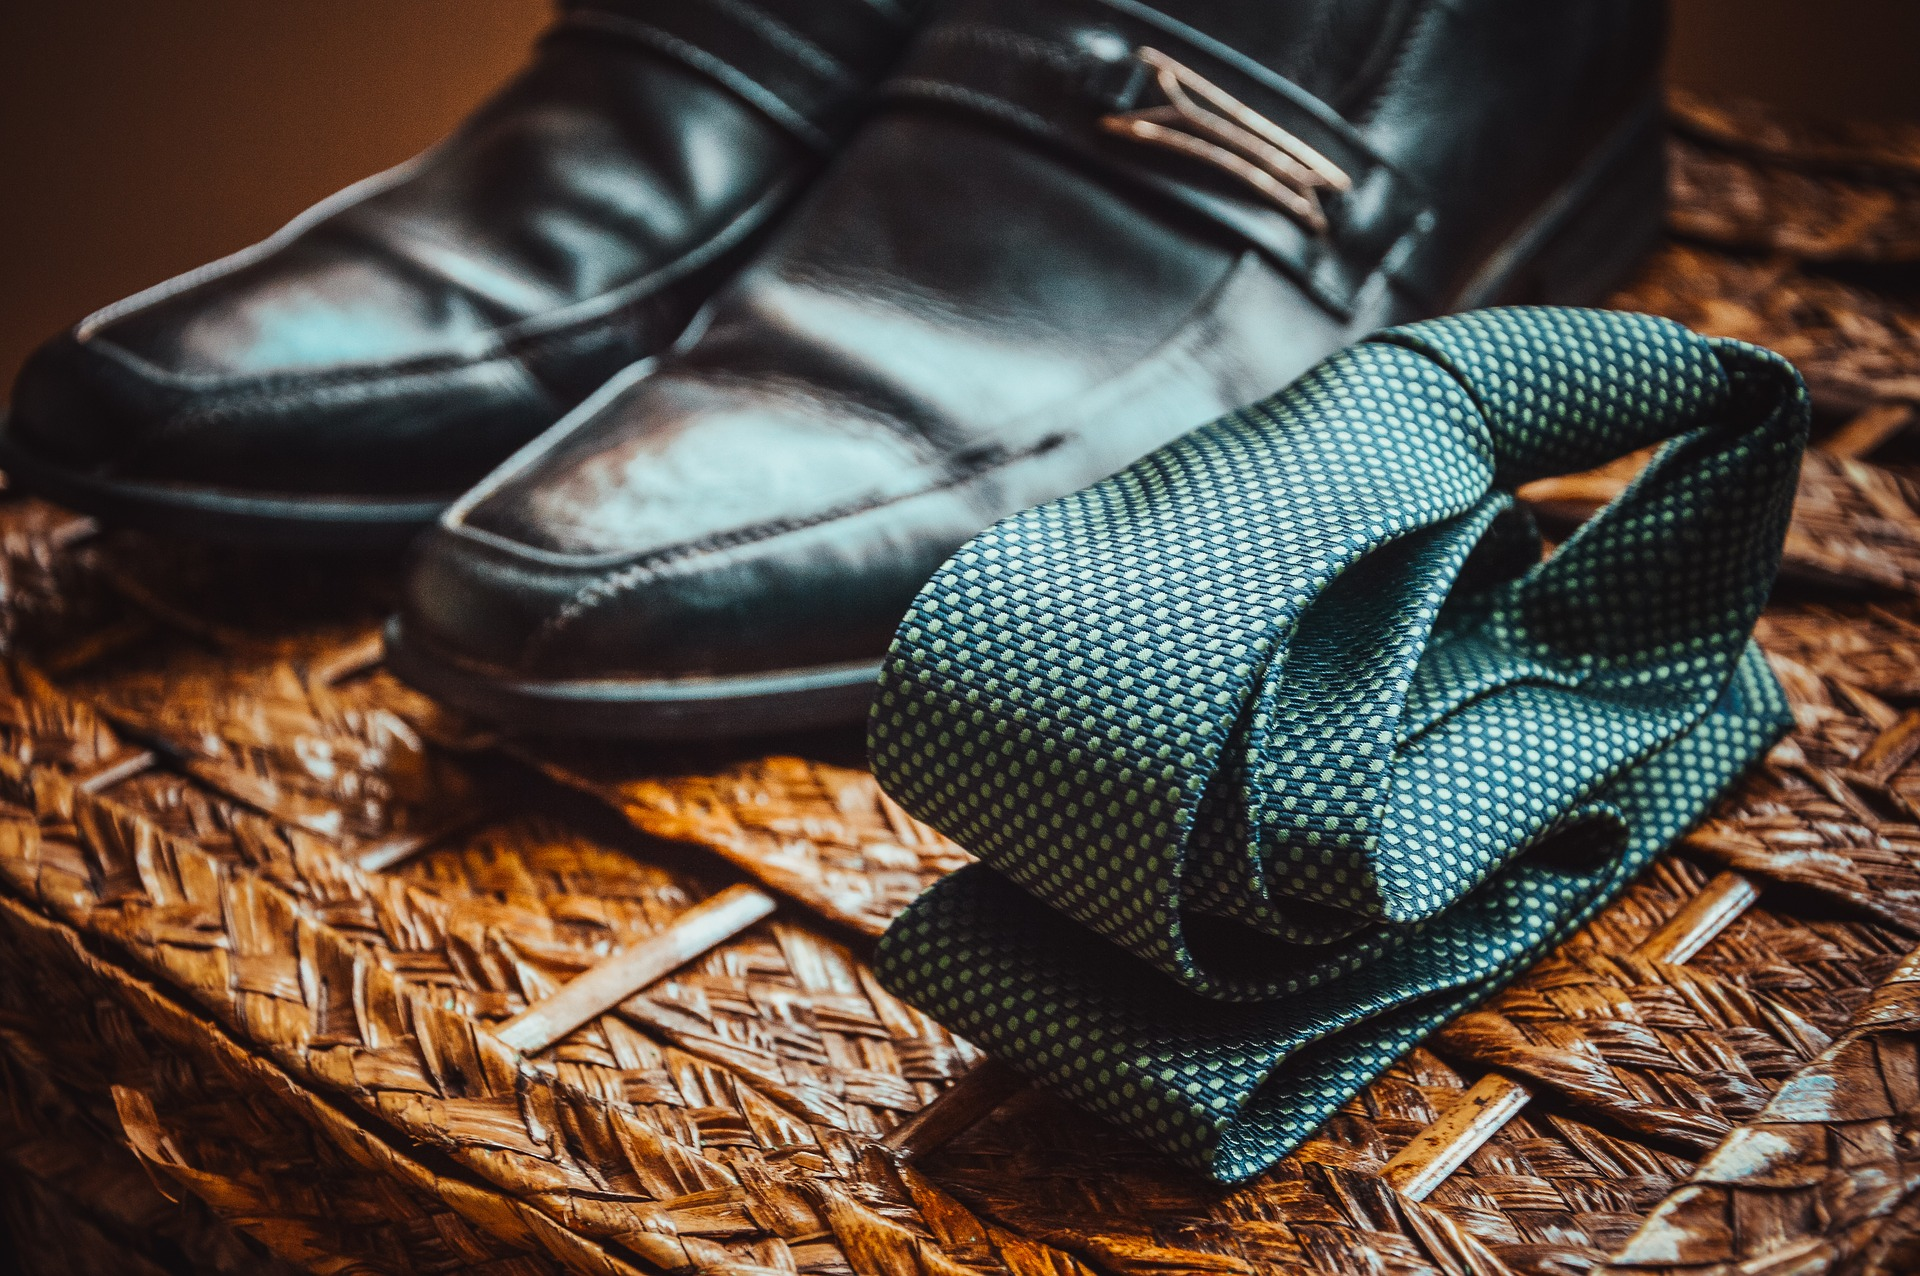 tesztek Jinx Repellent Magic Formula